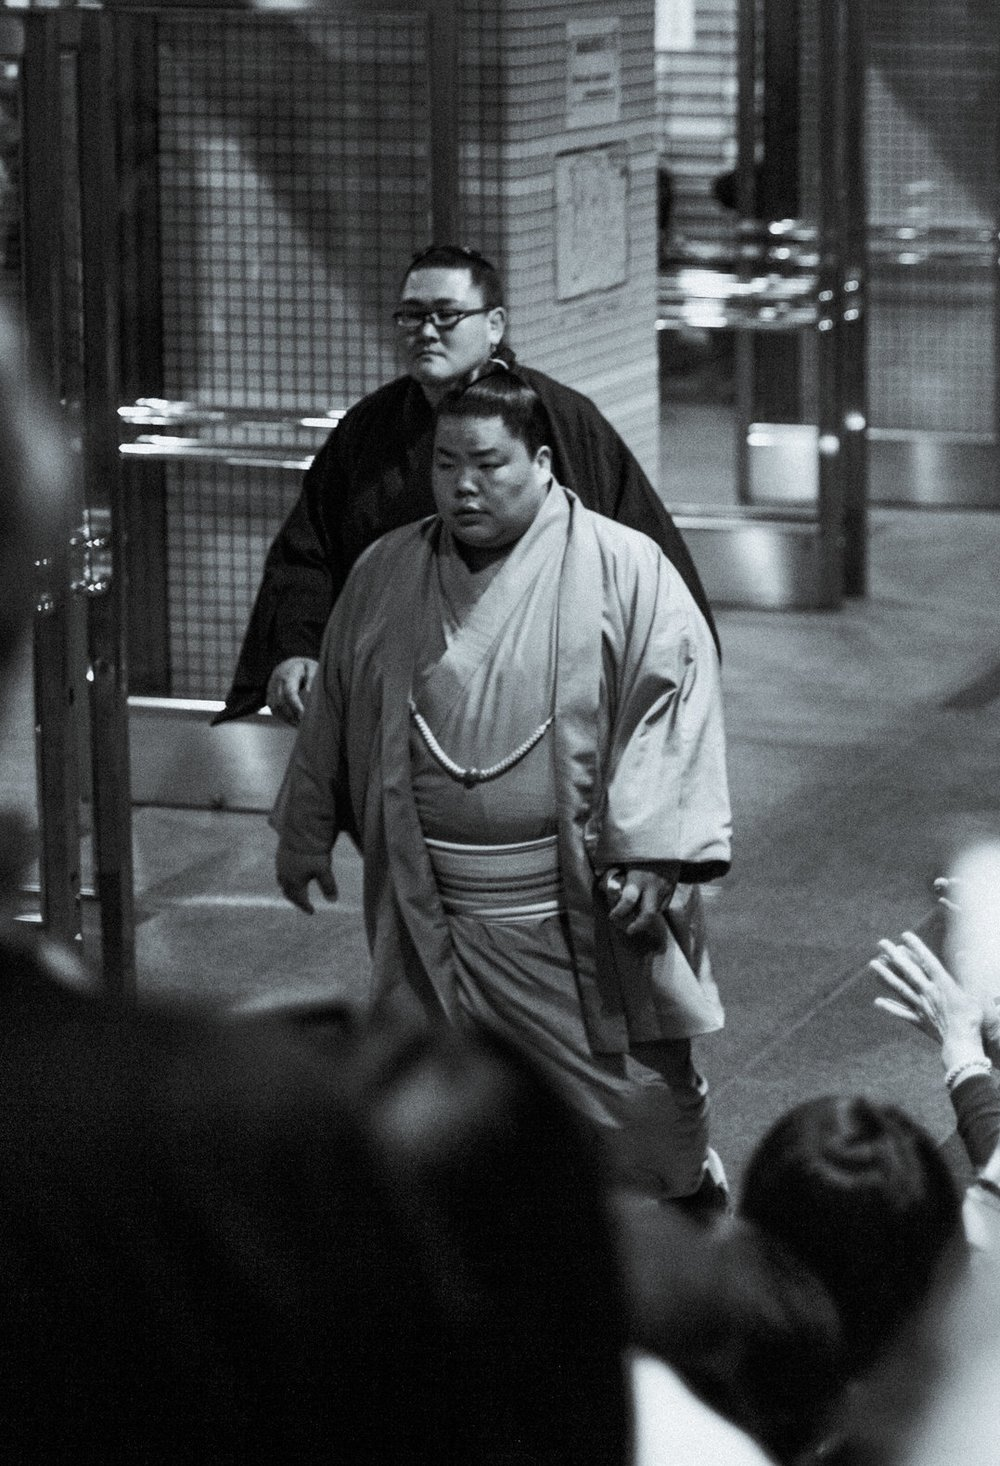 Sumo wrestlers are an extreme example of an Endomorph